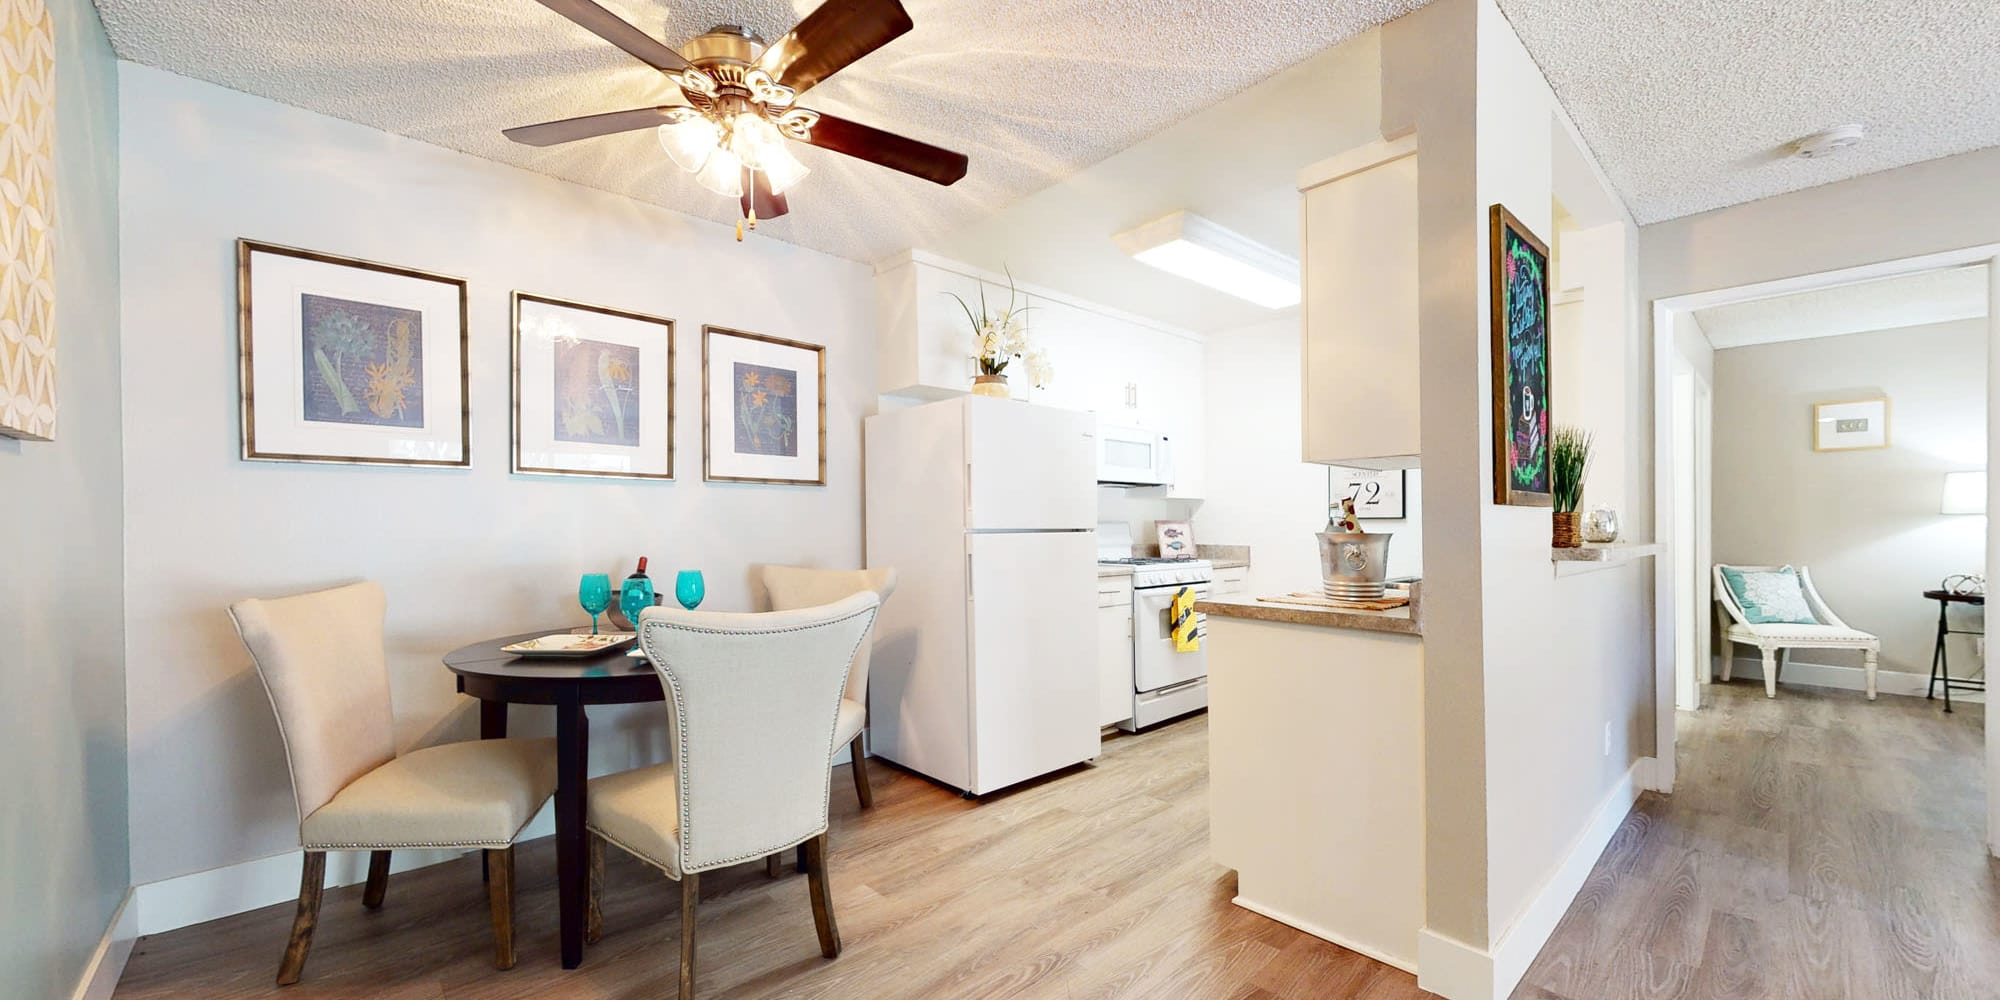 Ceiling fan above the dining nook next to the kitchen in a model apartment at Mountain Vista in Victorville, California